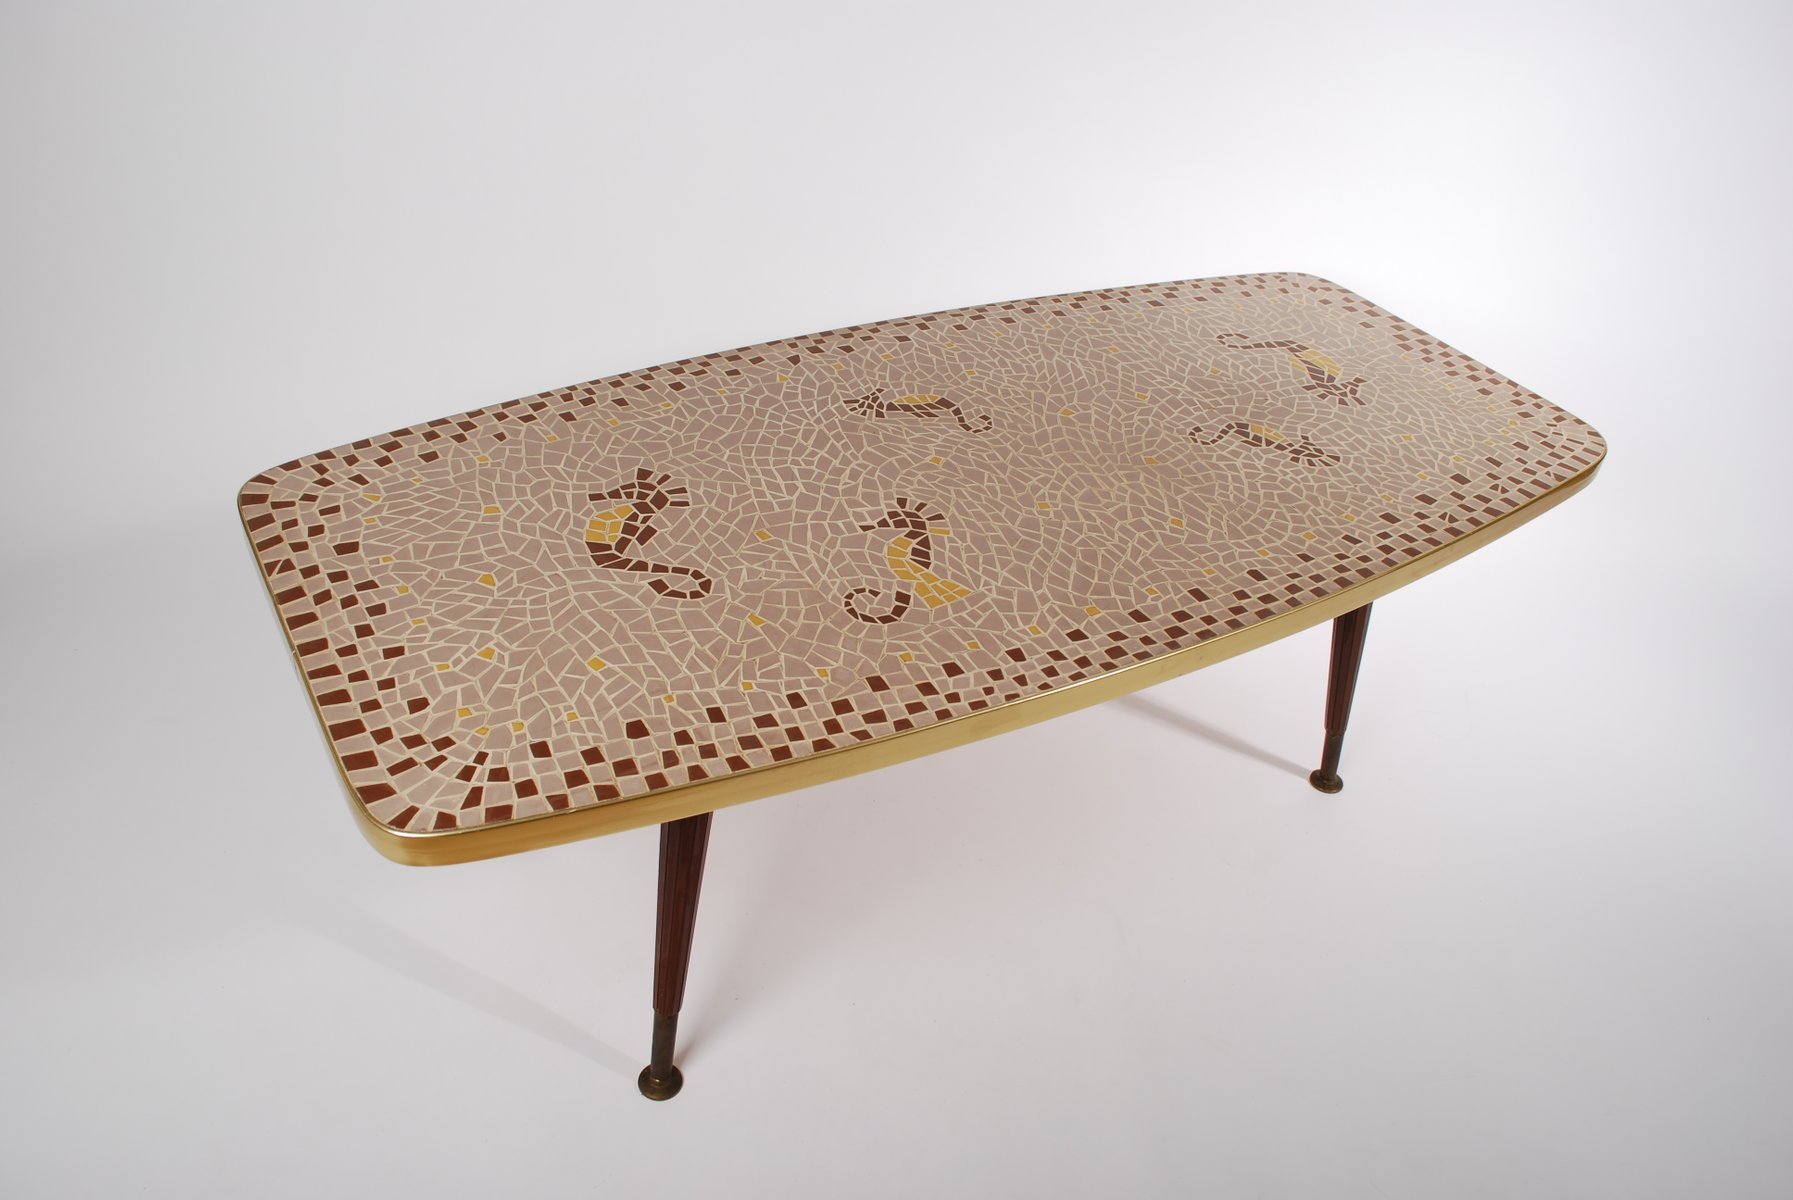 Vintage Seahorse Mosaic Coffee Table S For Sale At Pamono - Seahorse coffee table